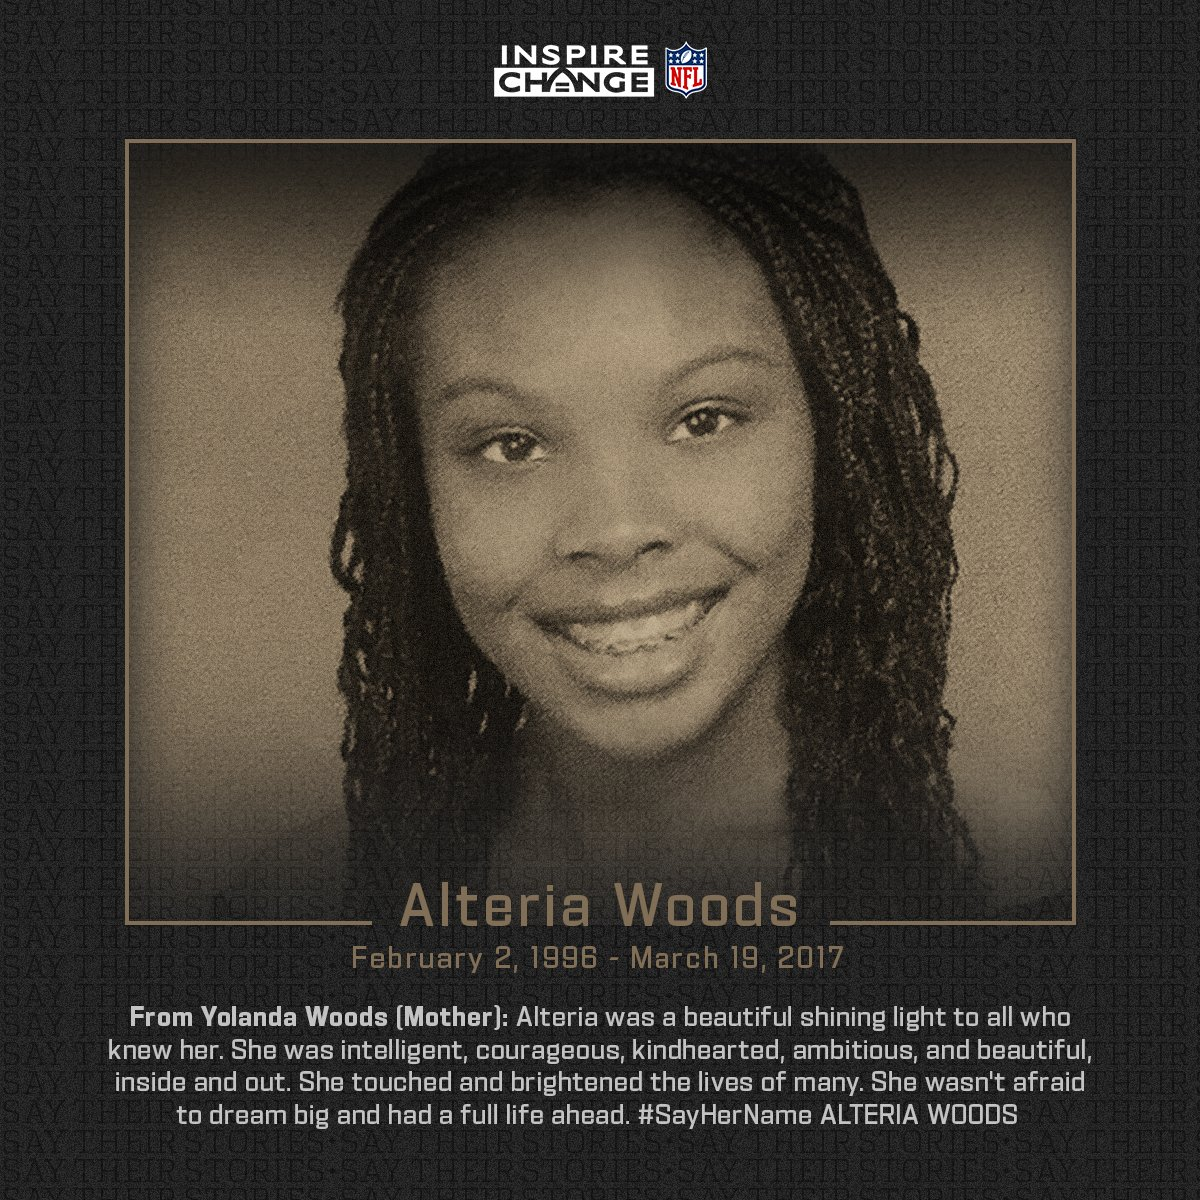 Say Her Name: Alteria Woods   Alteria is one of the many individuals being honored by players and coaches this season through the NFL's helmet decal program.  #SayTheirStories: